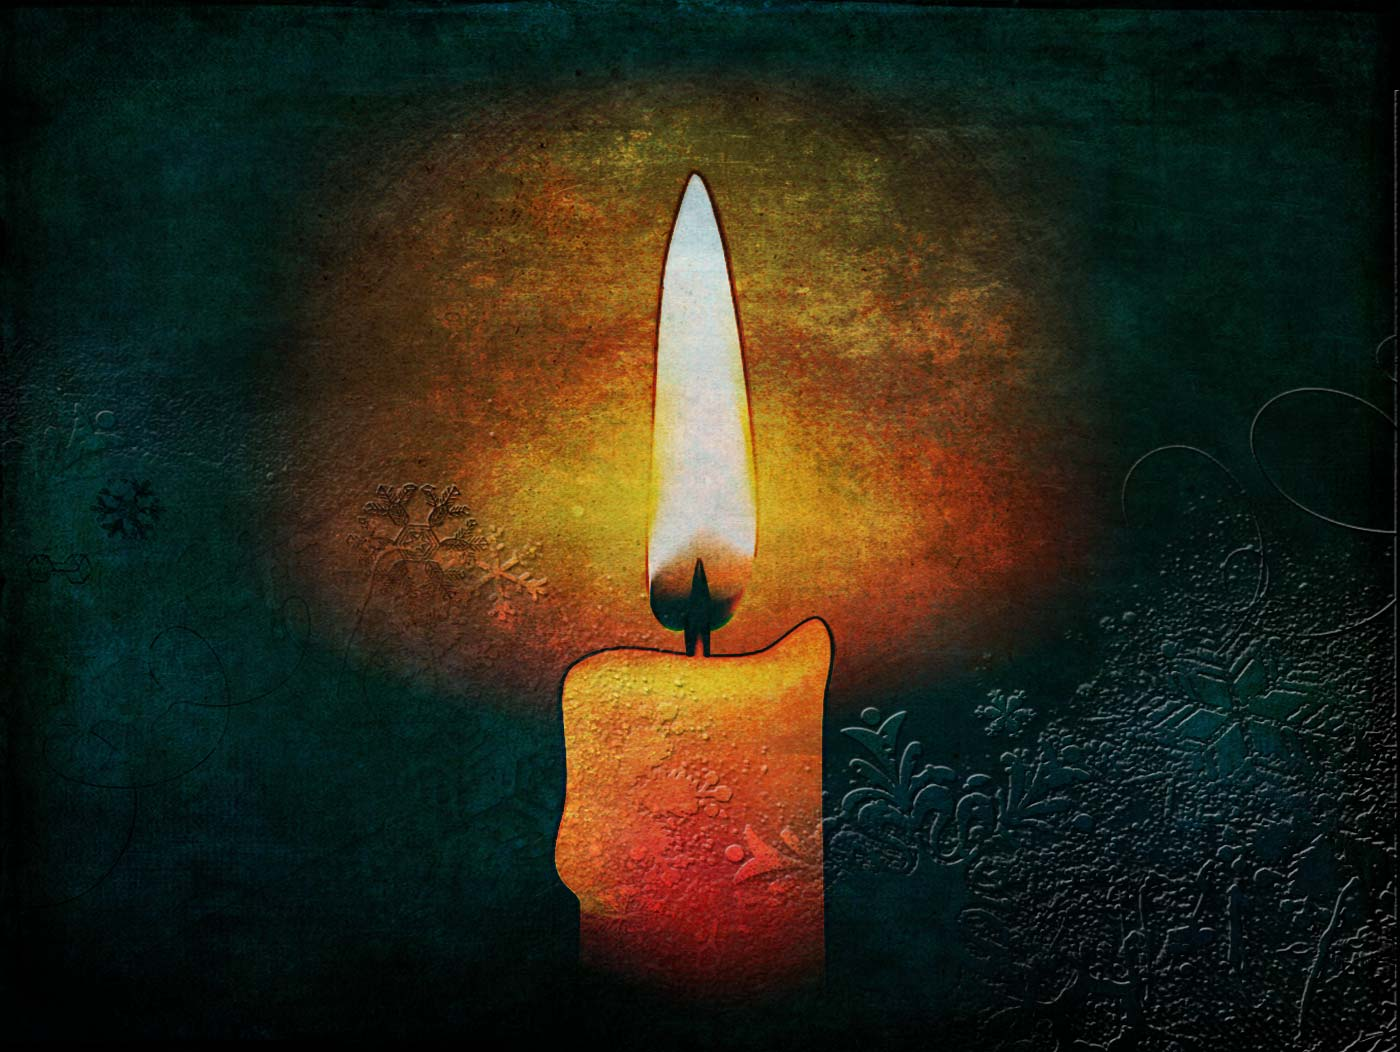 A Winterfest candle, lit and glowing